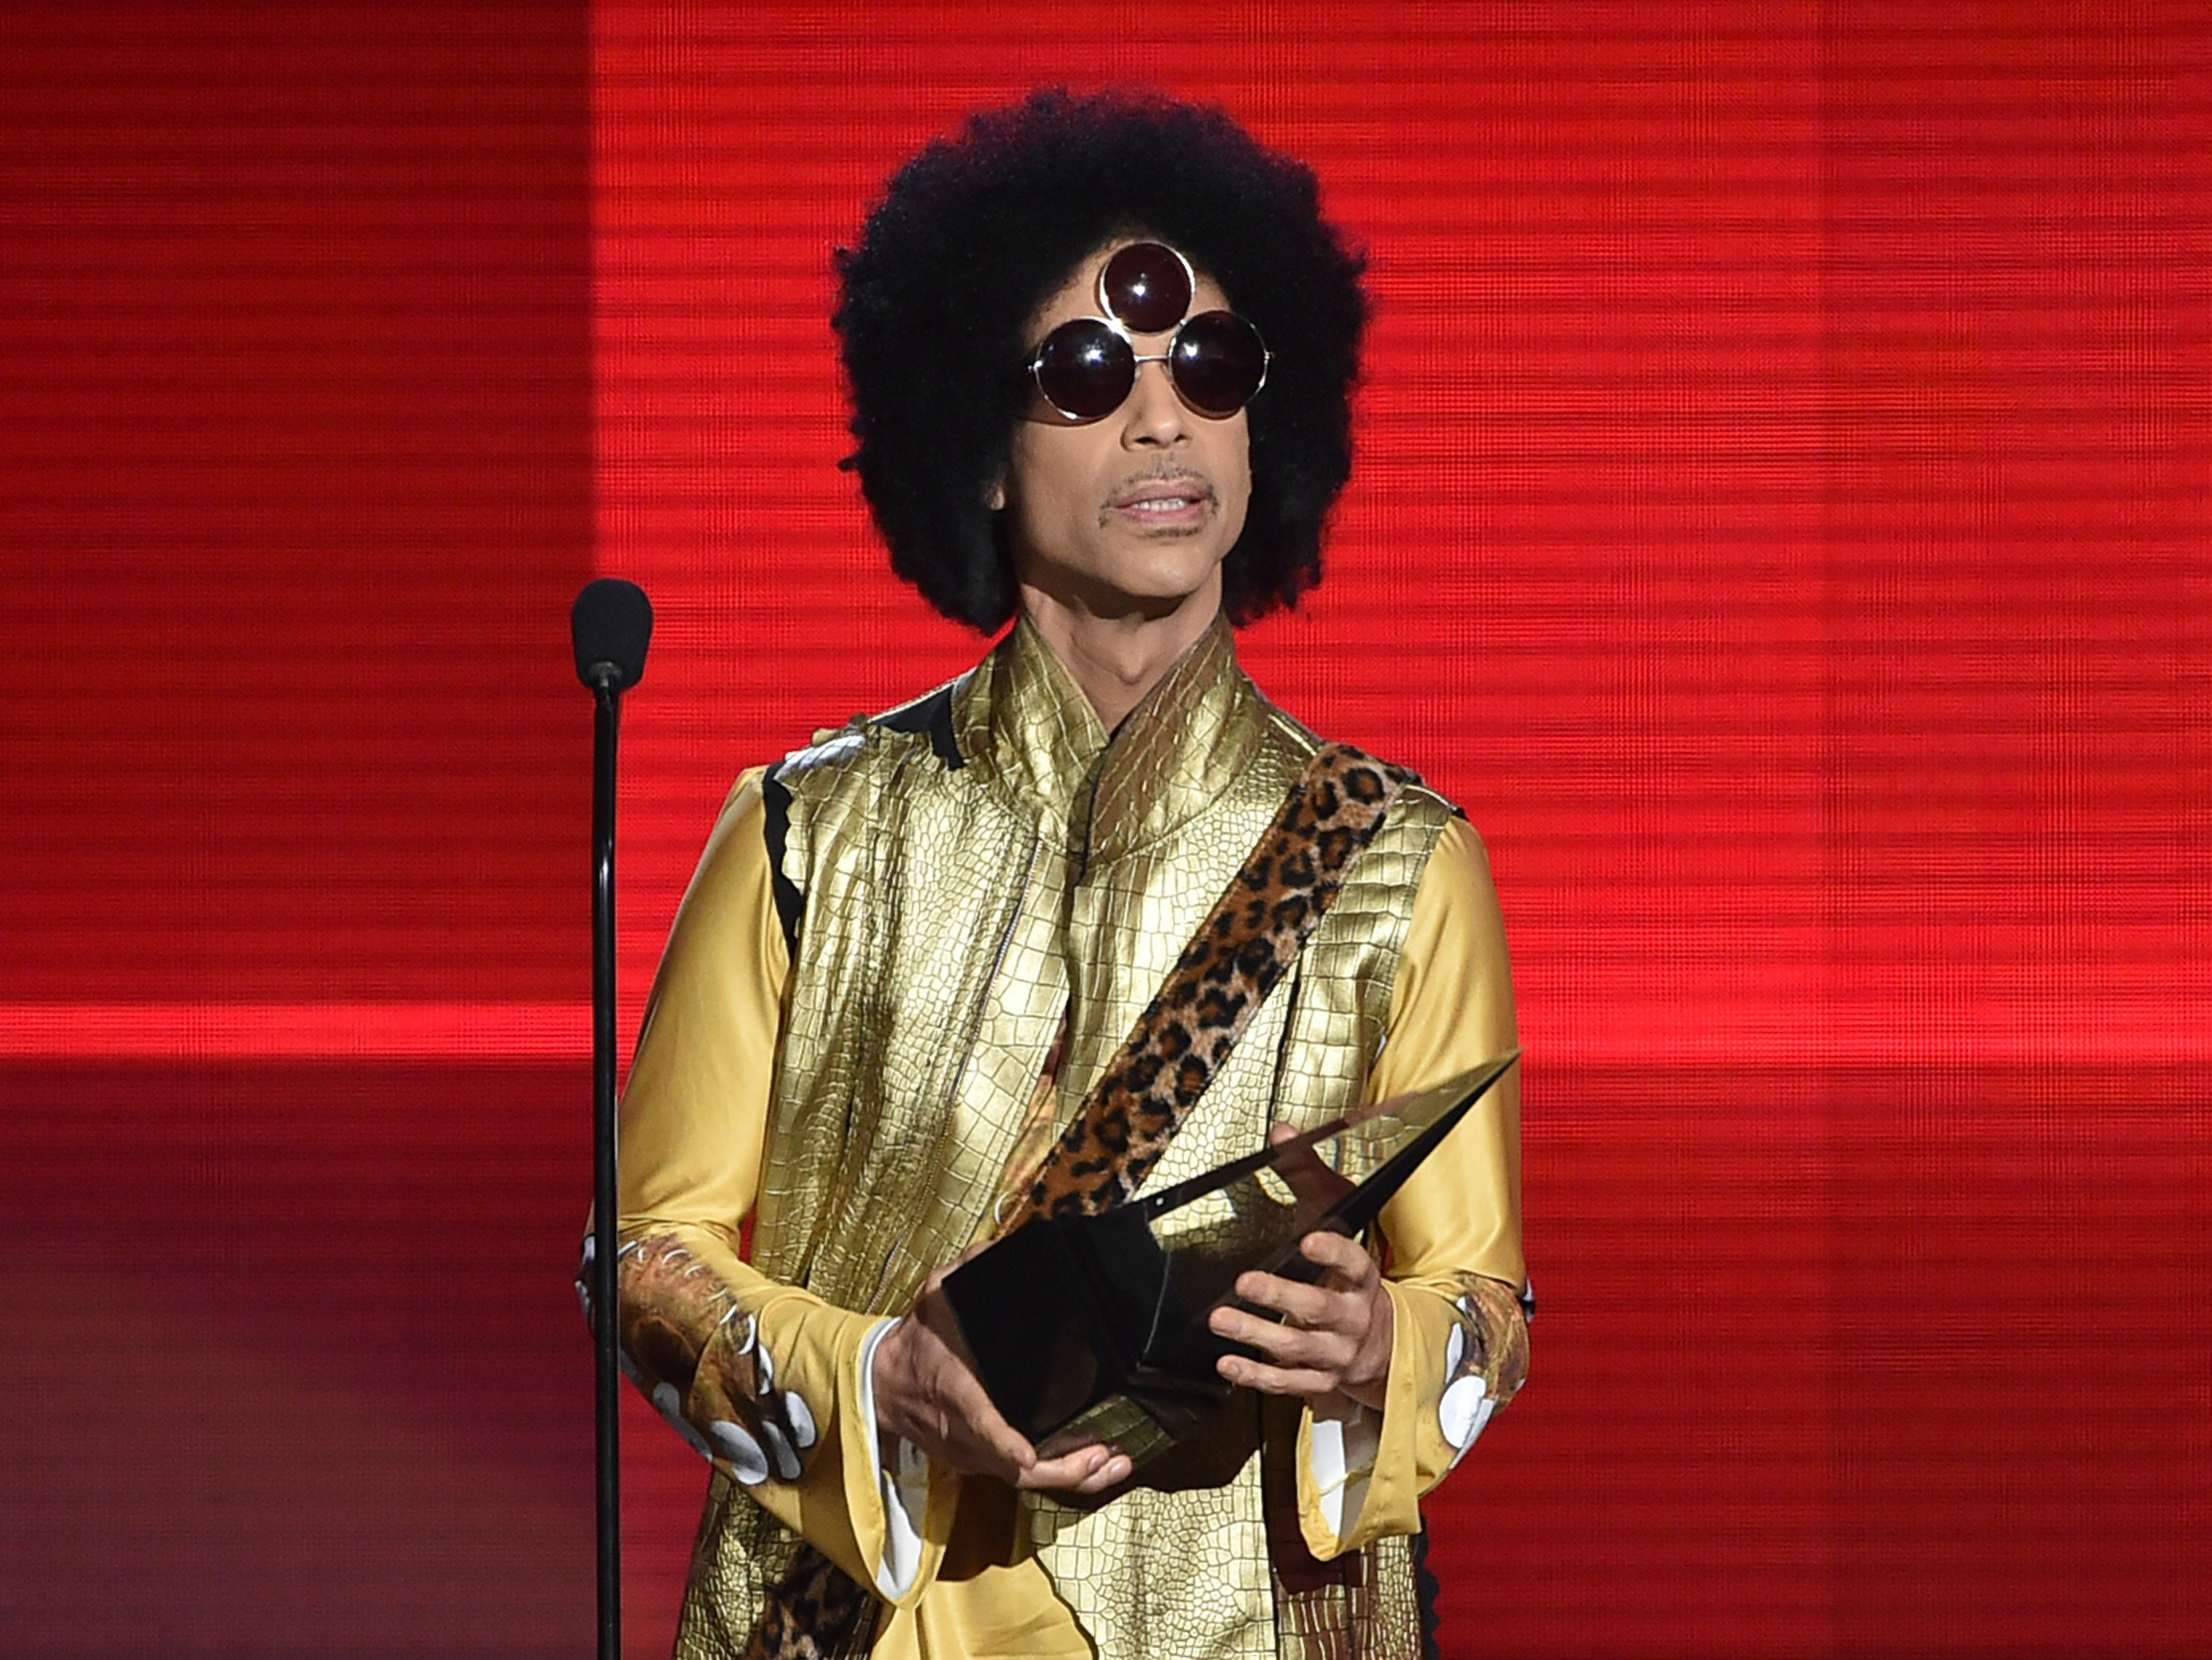 Will Prince's Music Come Back to Spotify Now That He's Died?